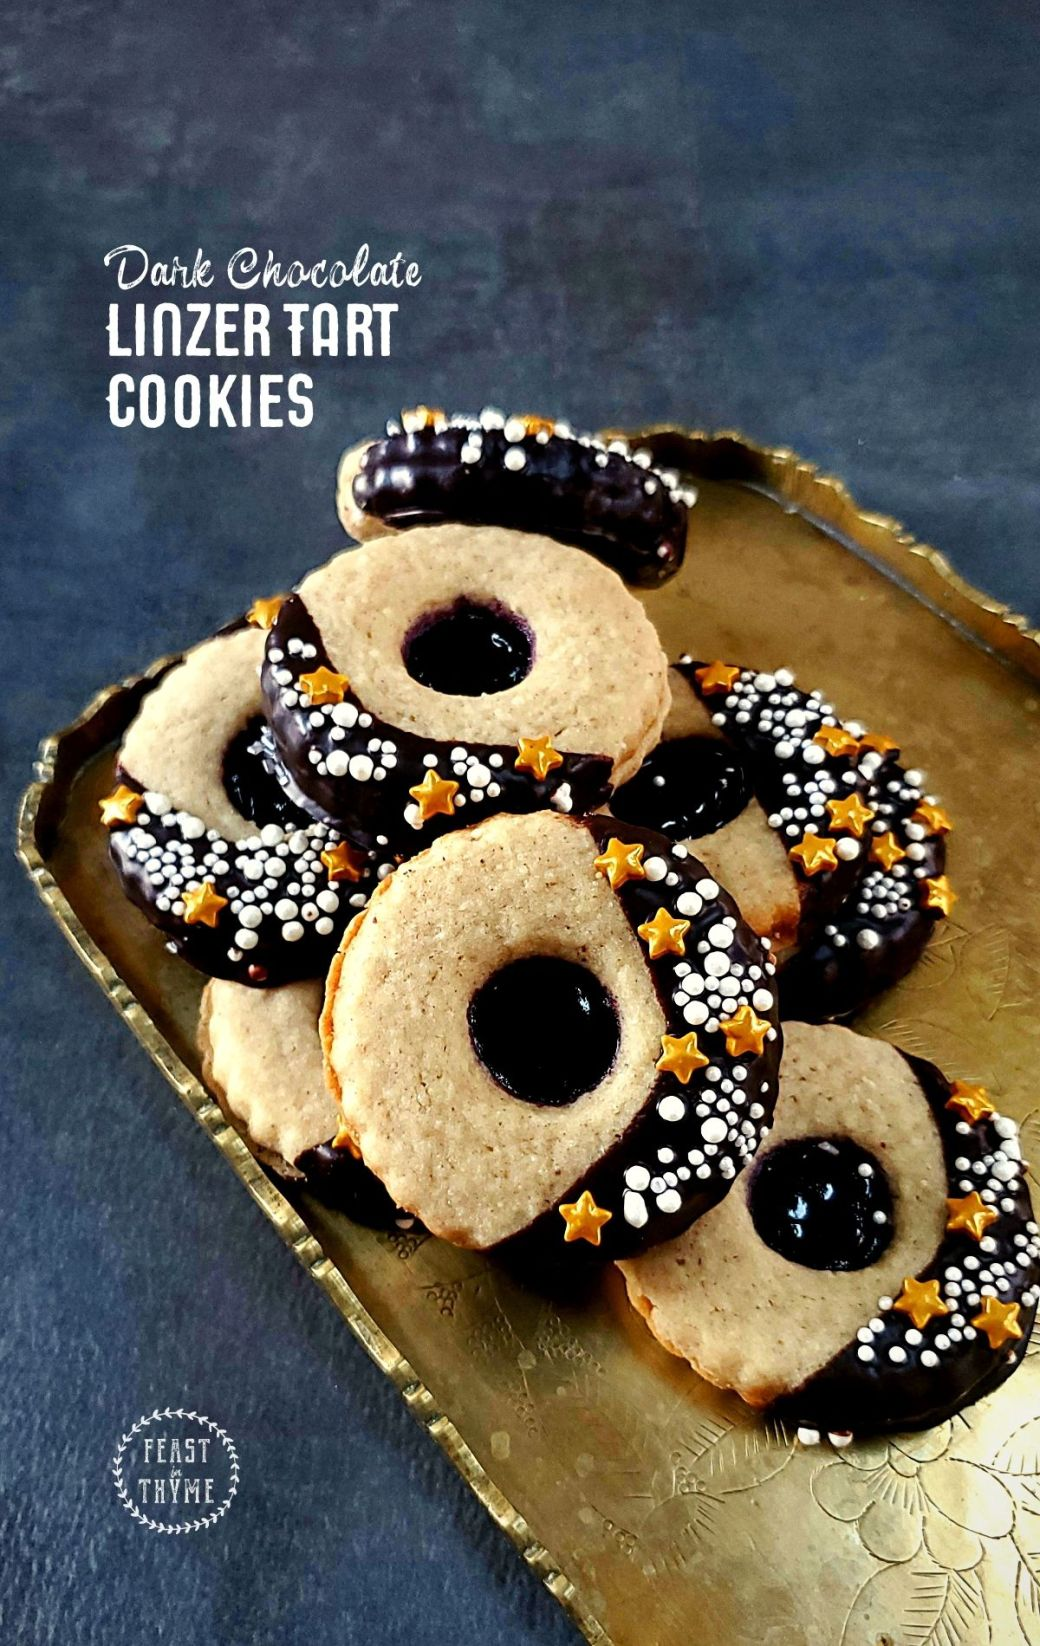 Dark Chocolate Linzer Tarts with Black Raspberry Jam